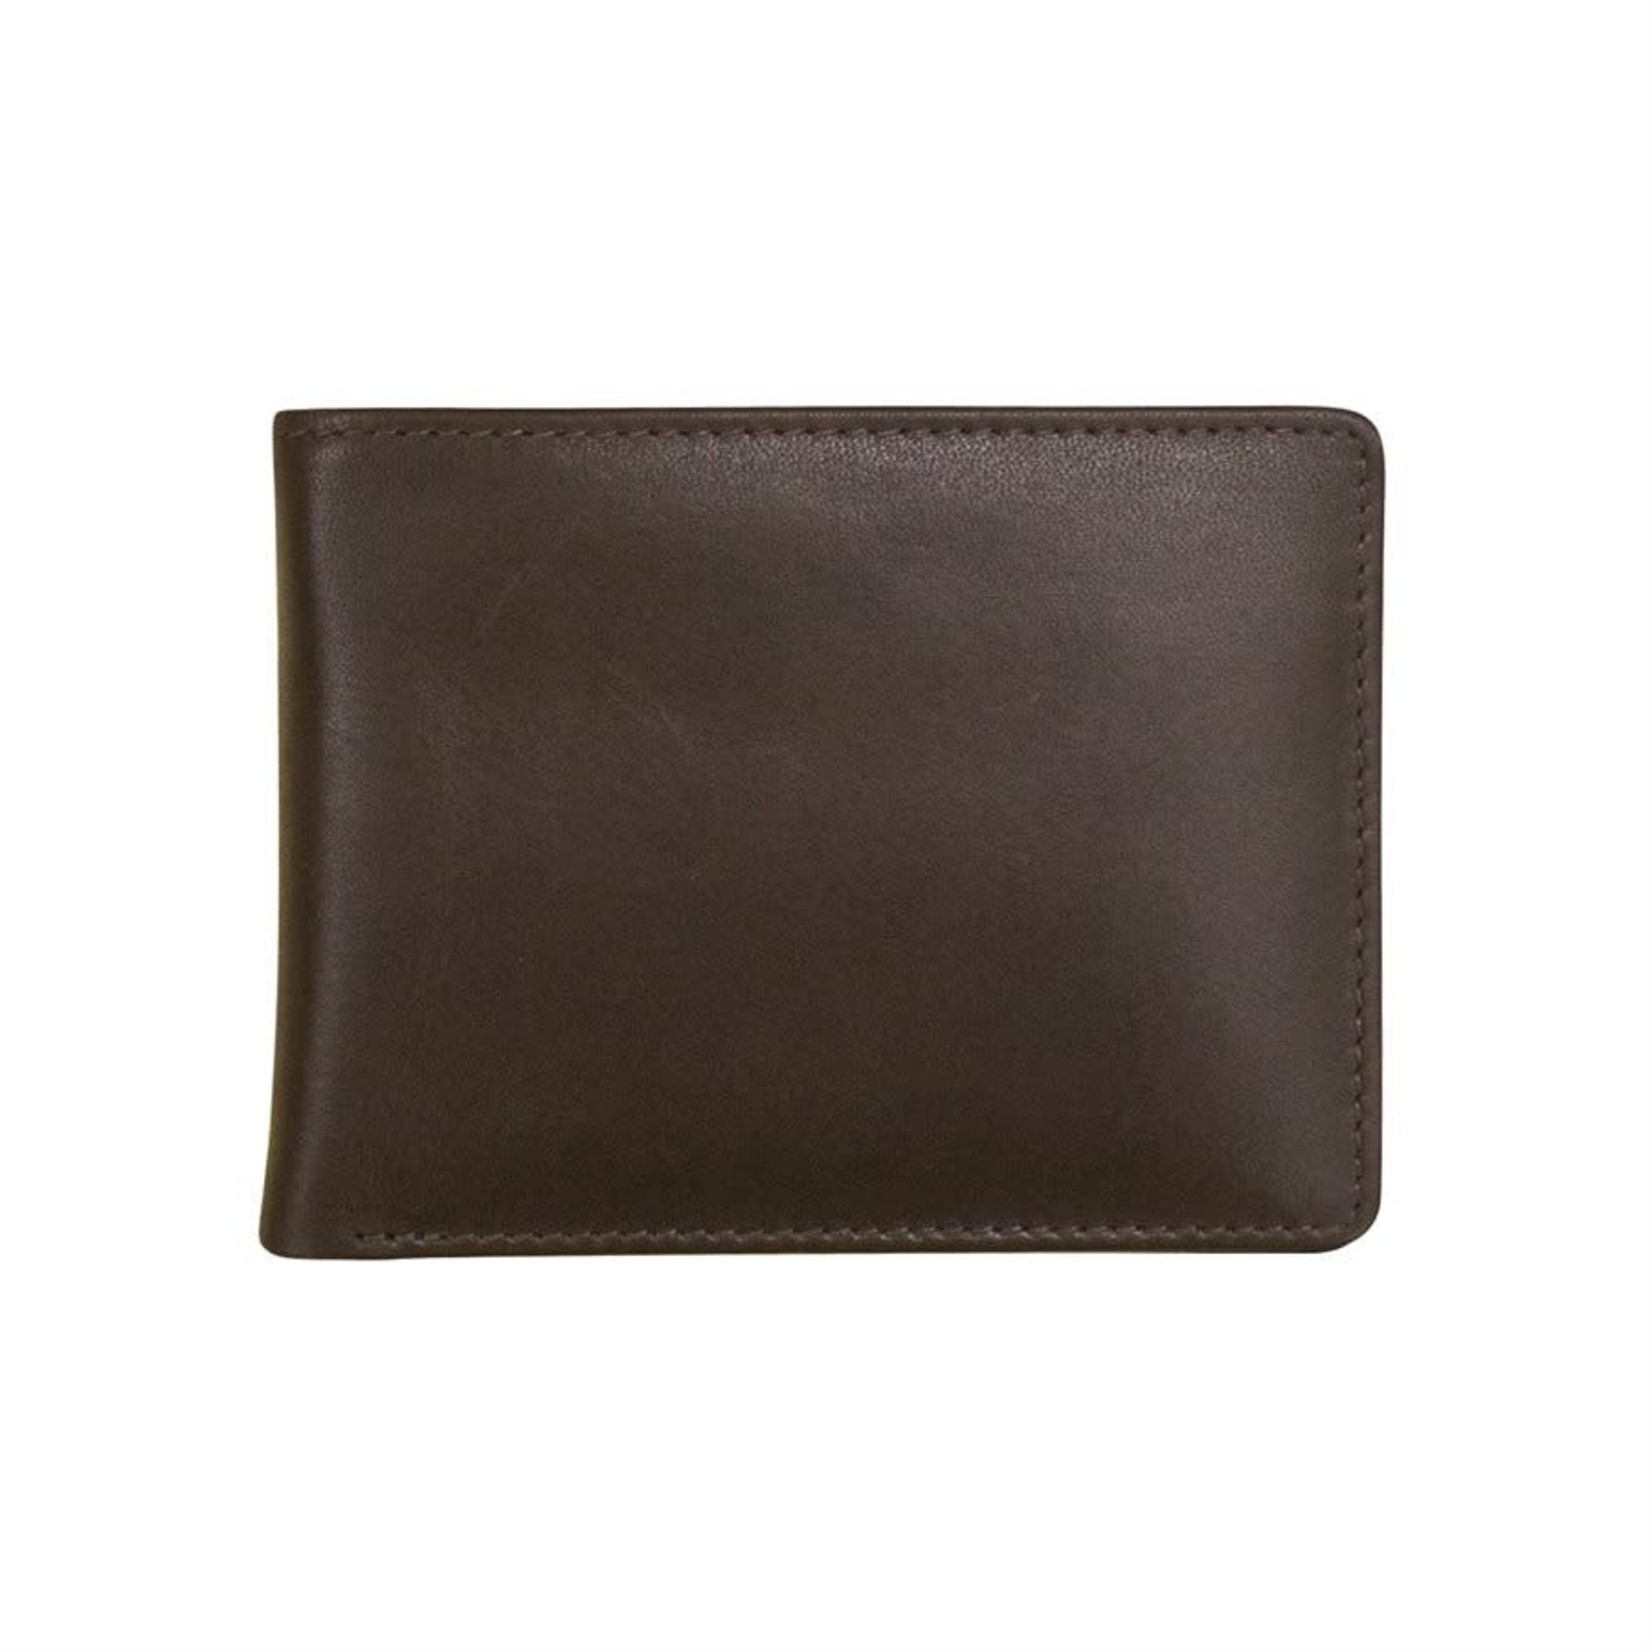 Leather Handbags and Accessories 7150 Brown - RFID BiFold Wallet